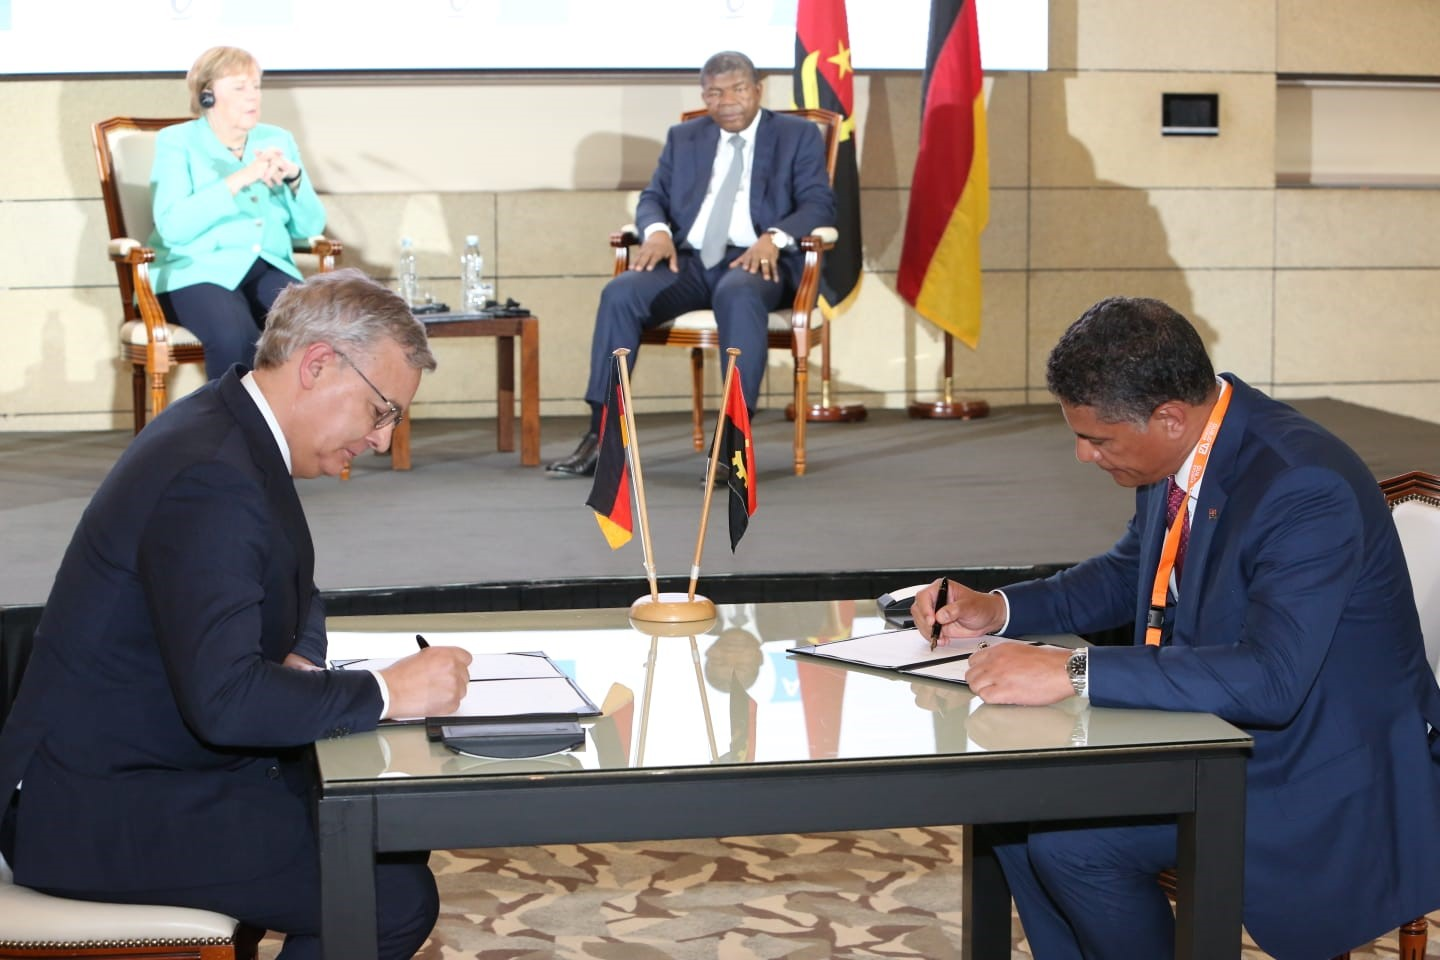 Dr. Toralf Haag signed the memorandum of understanding with the Angolan Minister for Energy and Water João Baptista Borges in the presence of Federal Chancellor Dr. Angela Merkel and the Angolan President João Manuel Gonçalves Lourenço